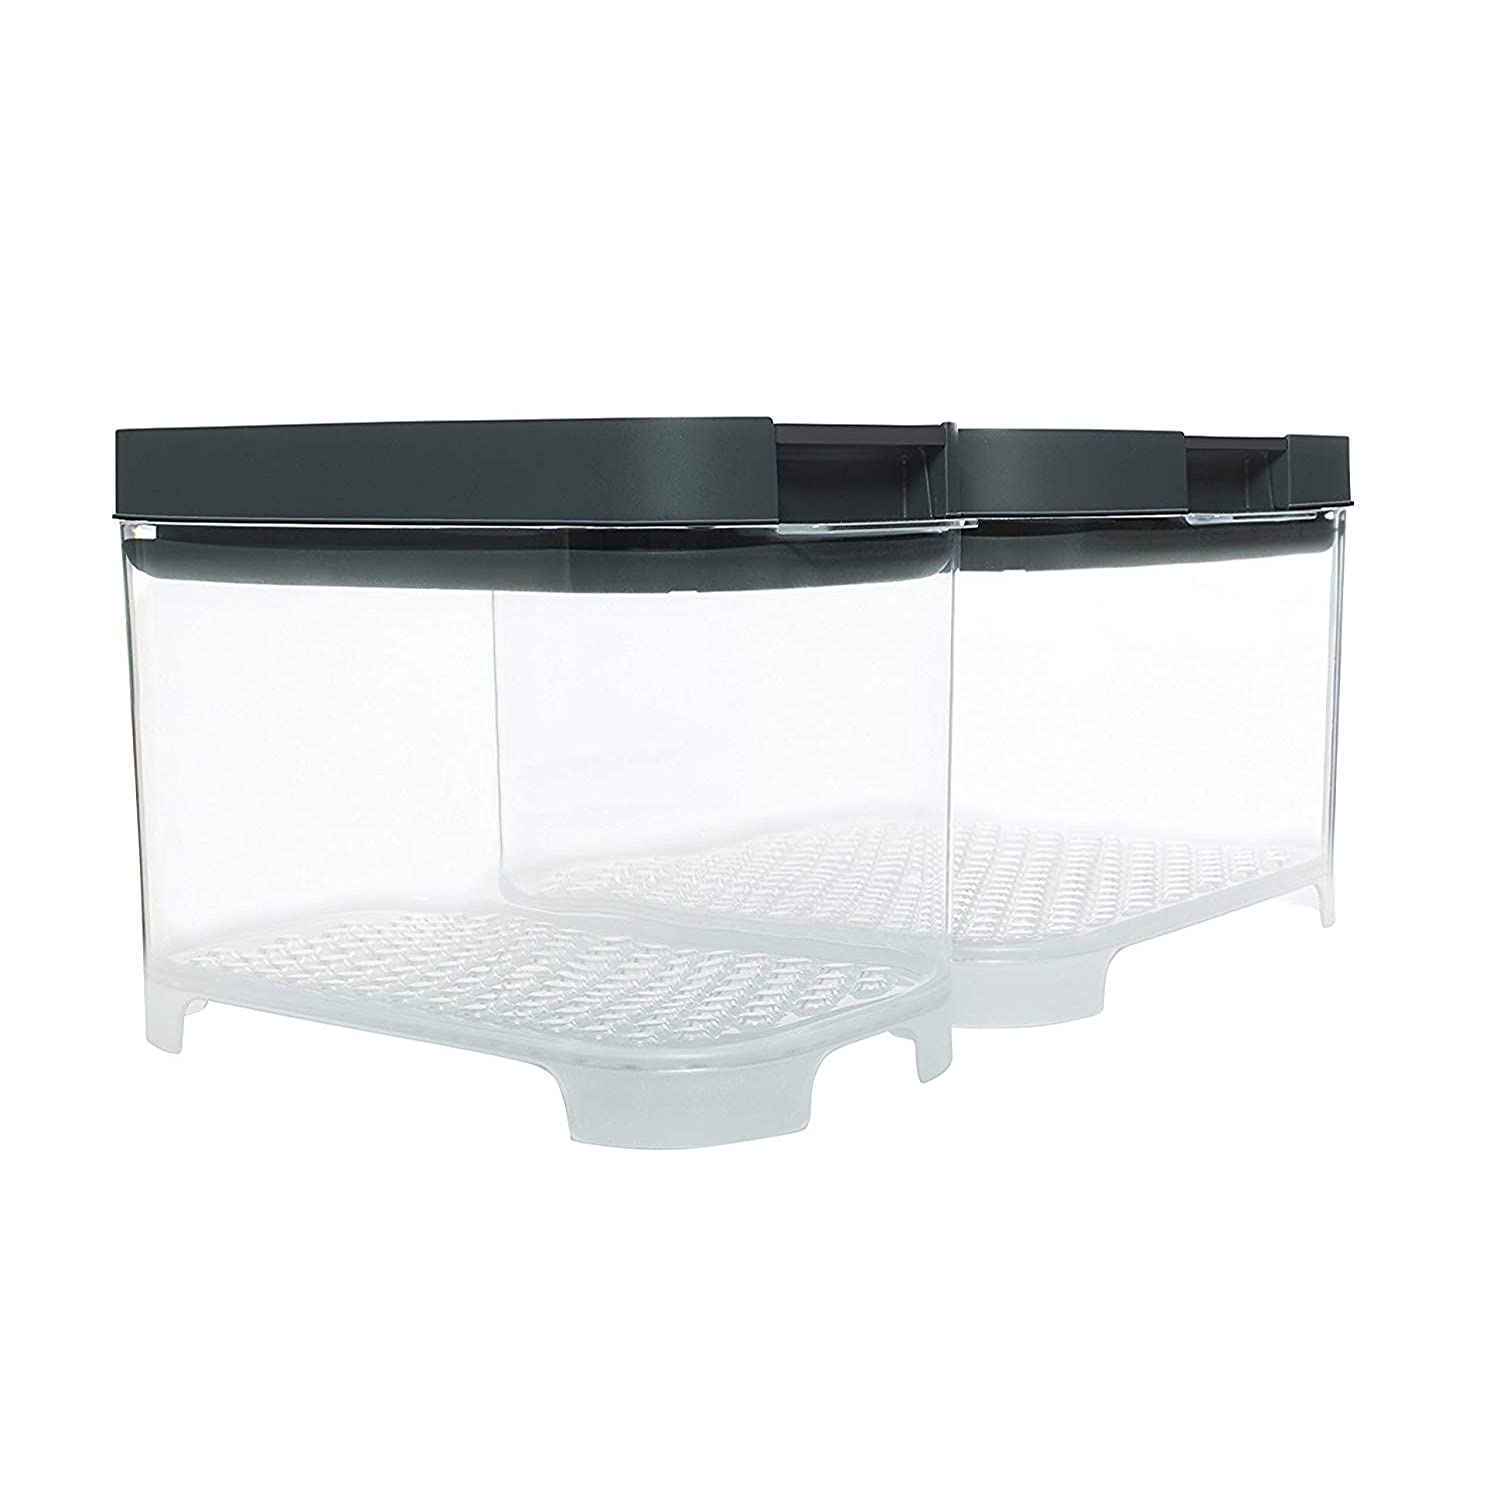 Rubbermaid 2042885 FreshWorks Countertop Food Storage Produce Saver, Set, Clear/Grey